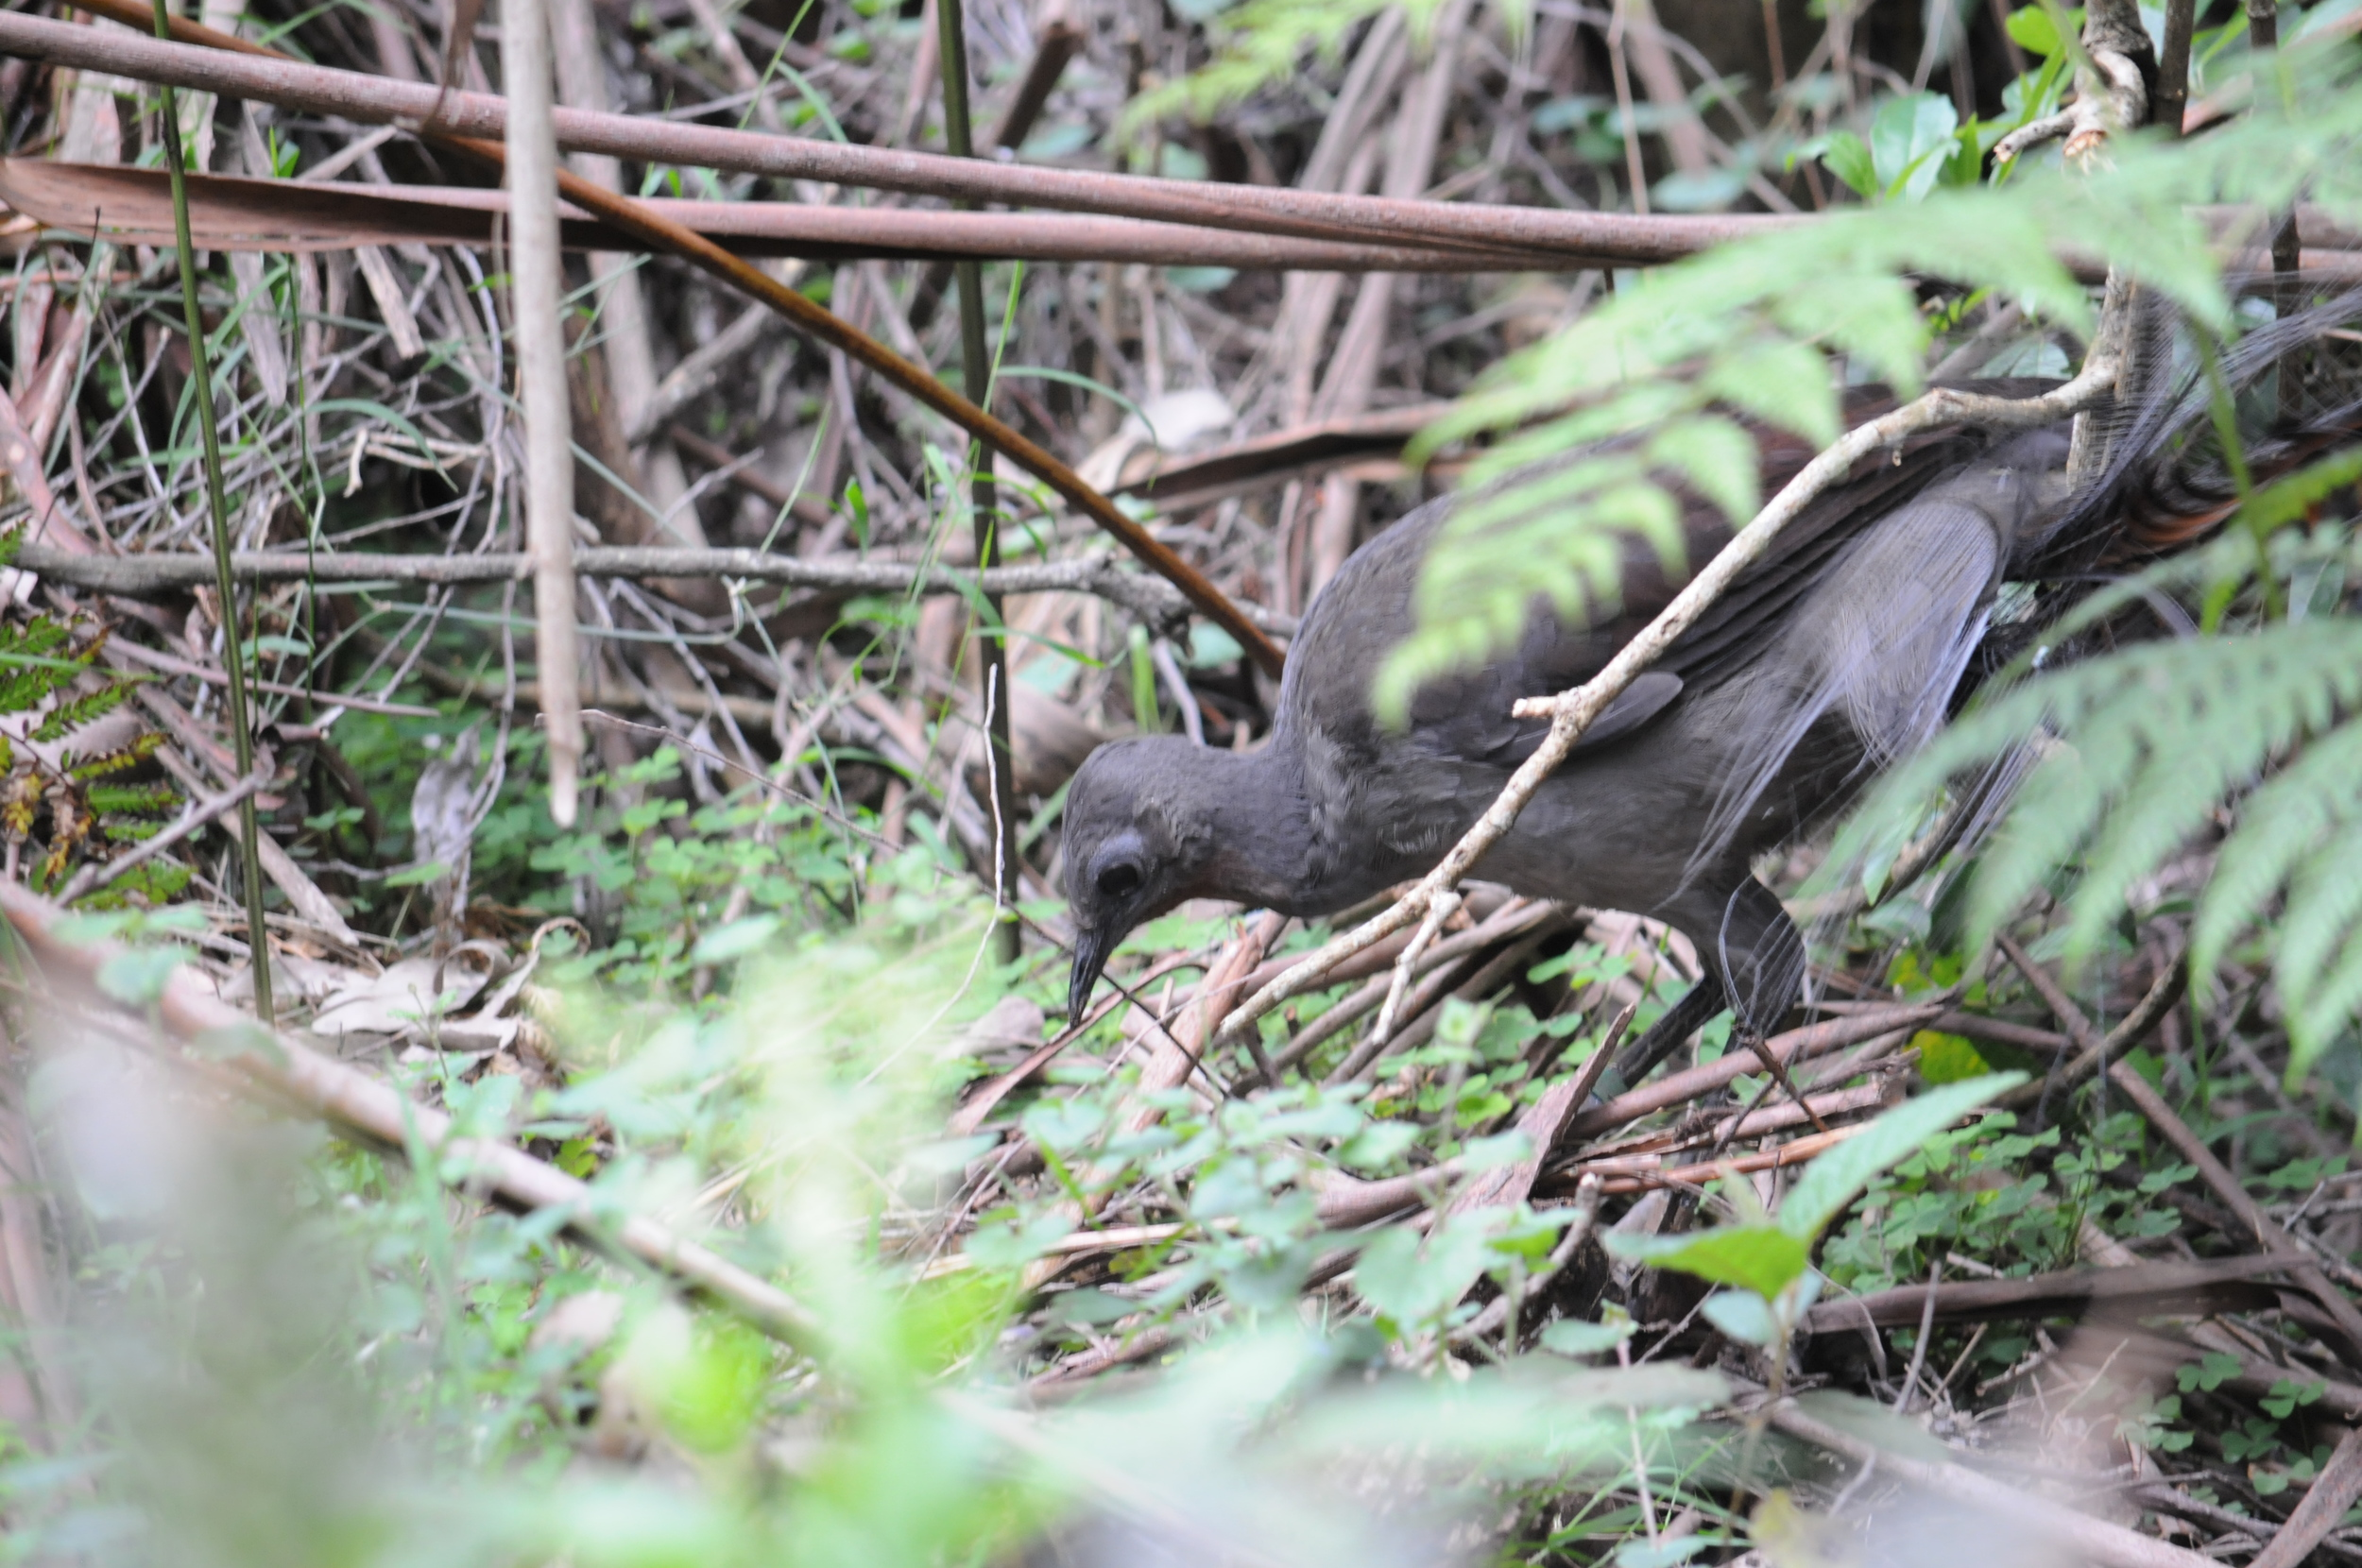 Lyrebirds scratch amongst the leaf litter in search of tasty invertebrates.